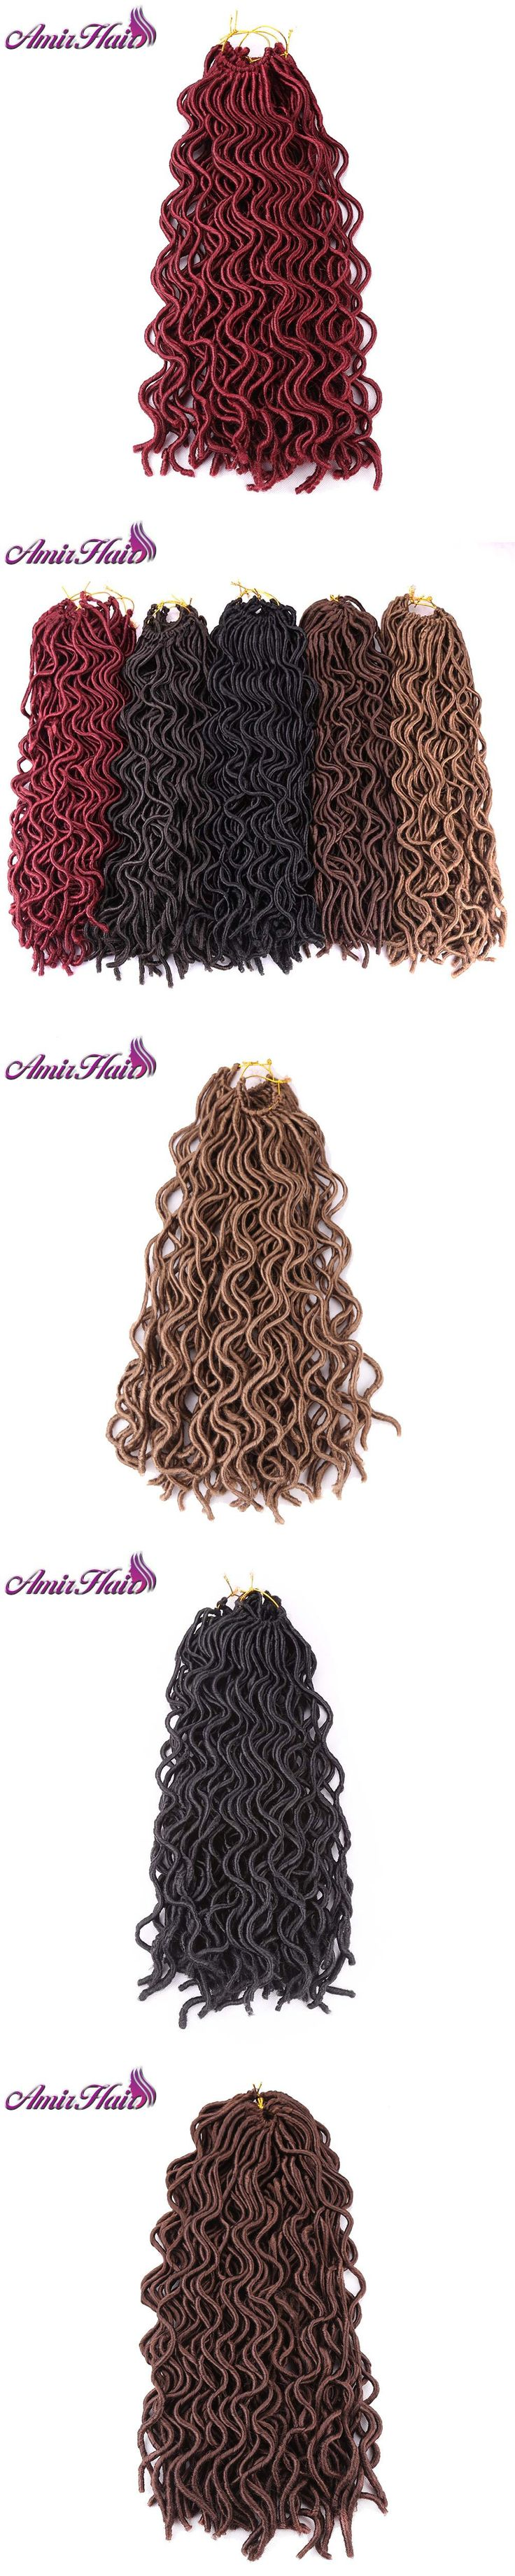 Amir Hair  Long Synthetic Fauxlocs  Curly with  22inch  24 strands  Black and Blond and Burgundy  Crochet   hair extensions